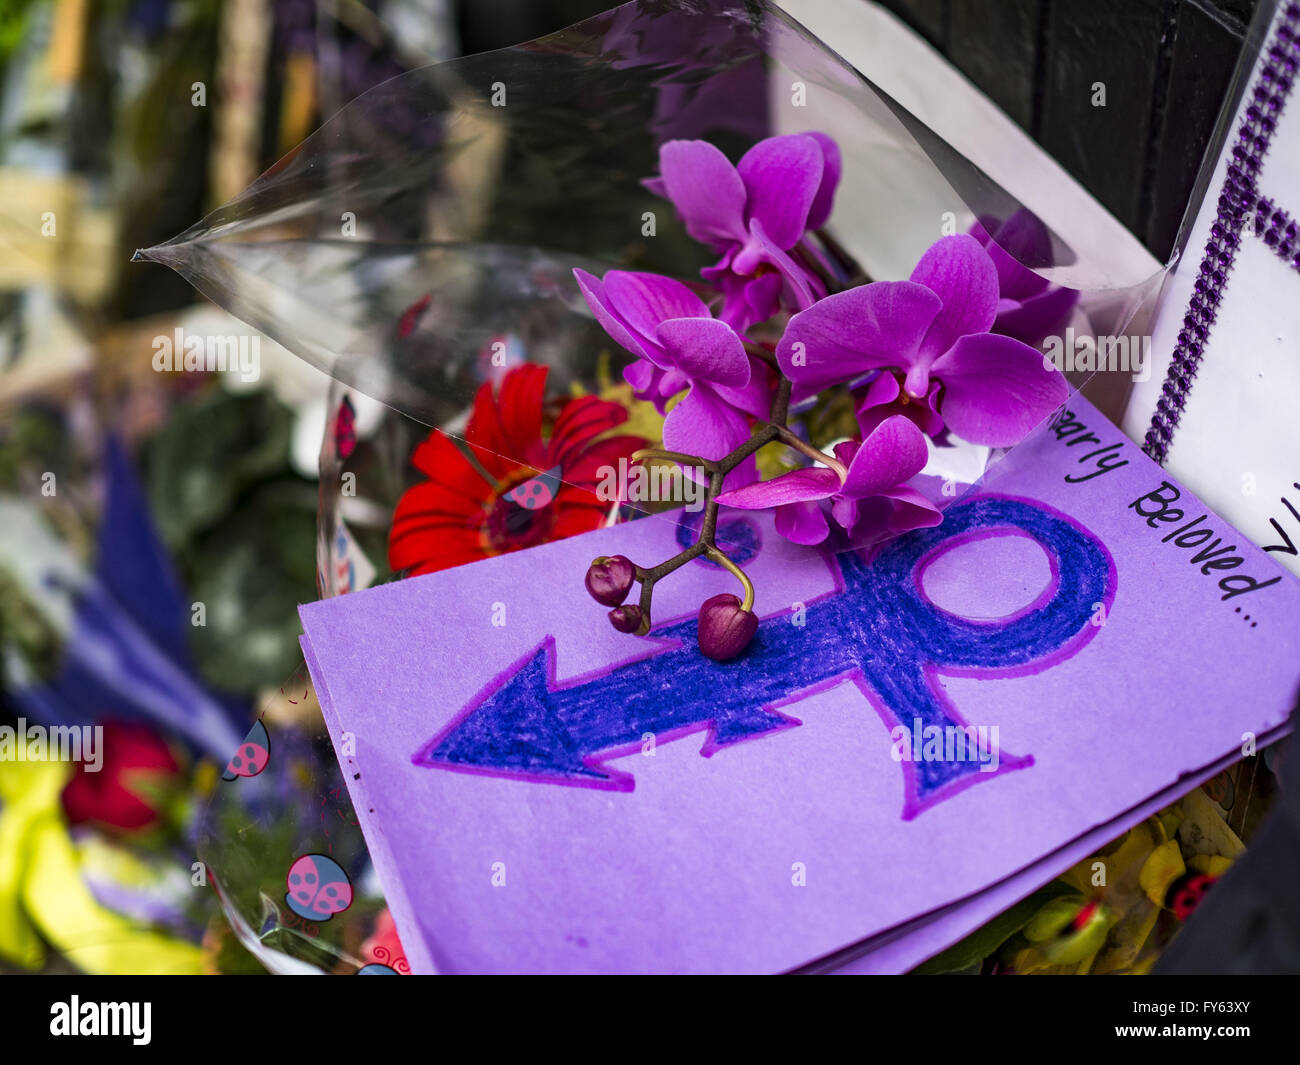 Minneapolis, Minnesota, USA. 22nd Apr, 2016. A card left at 1st Ave for Prince. Thousands of people came to 1st - Stock Image